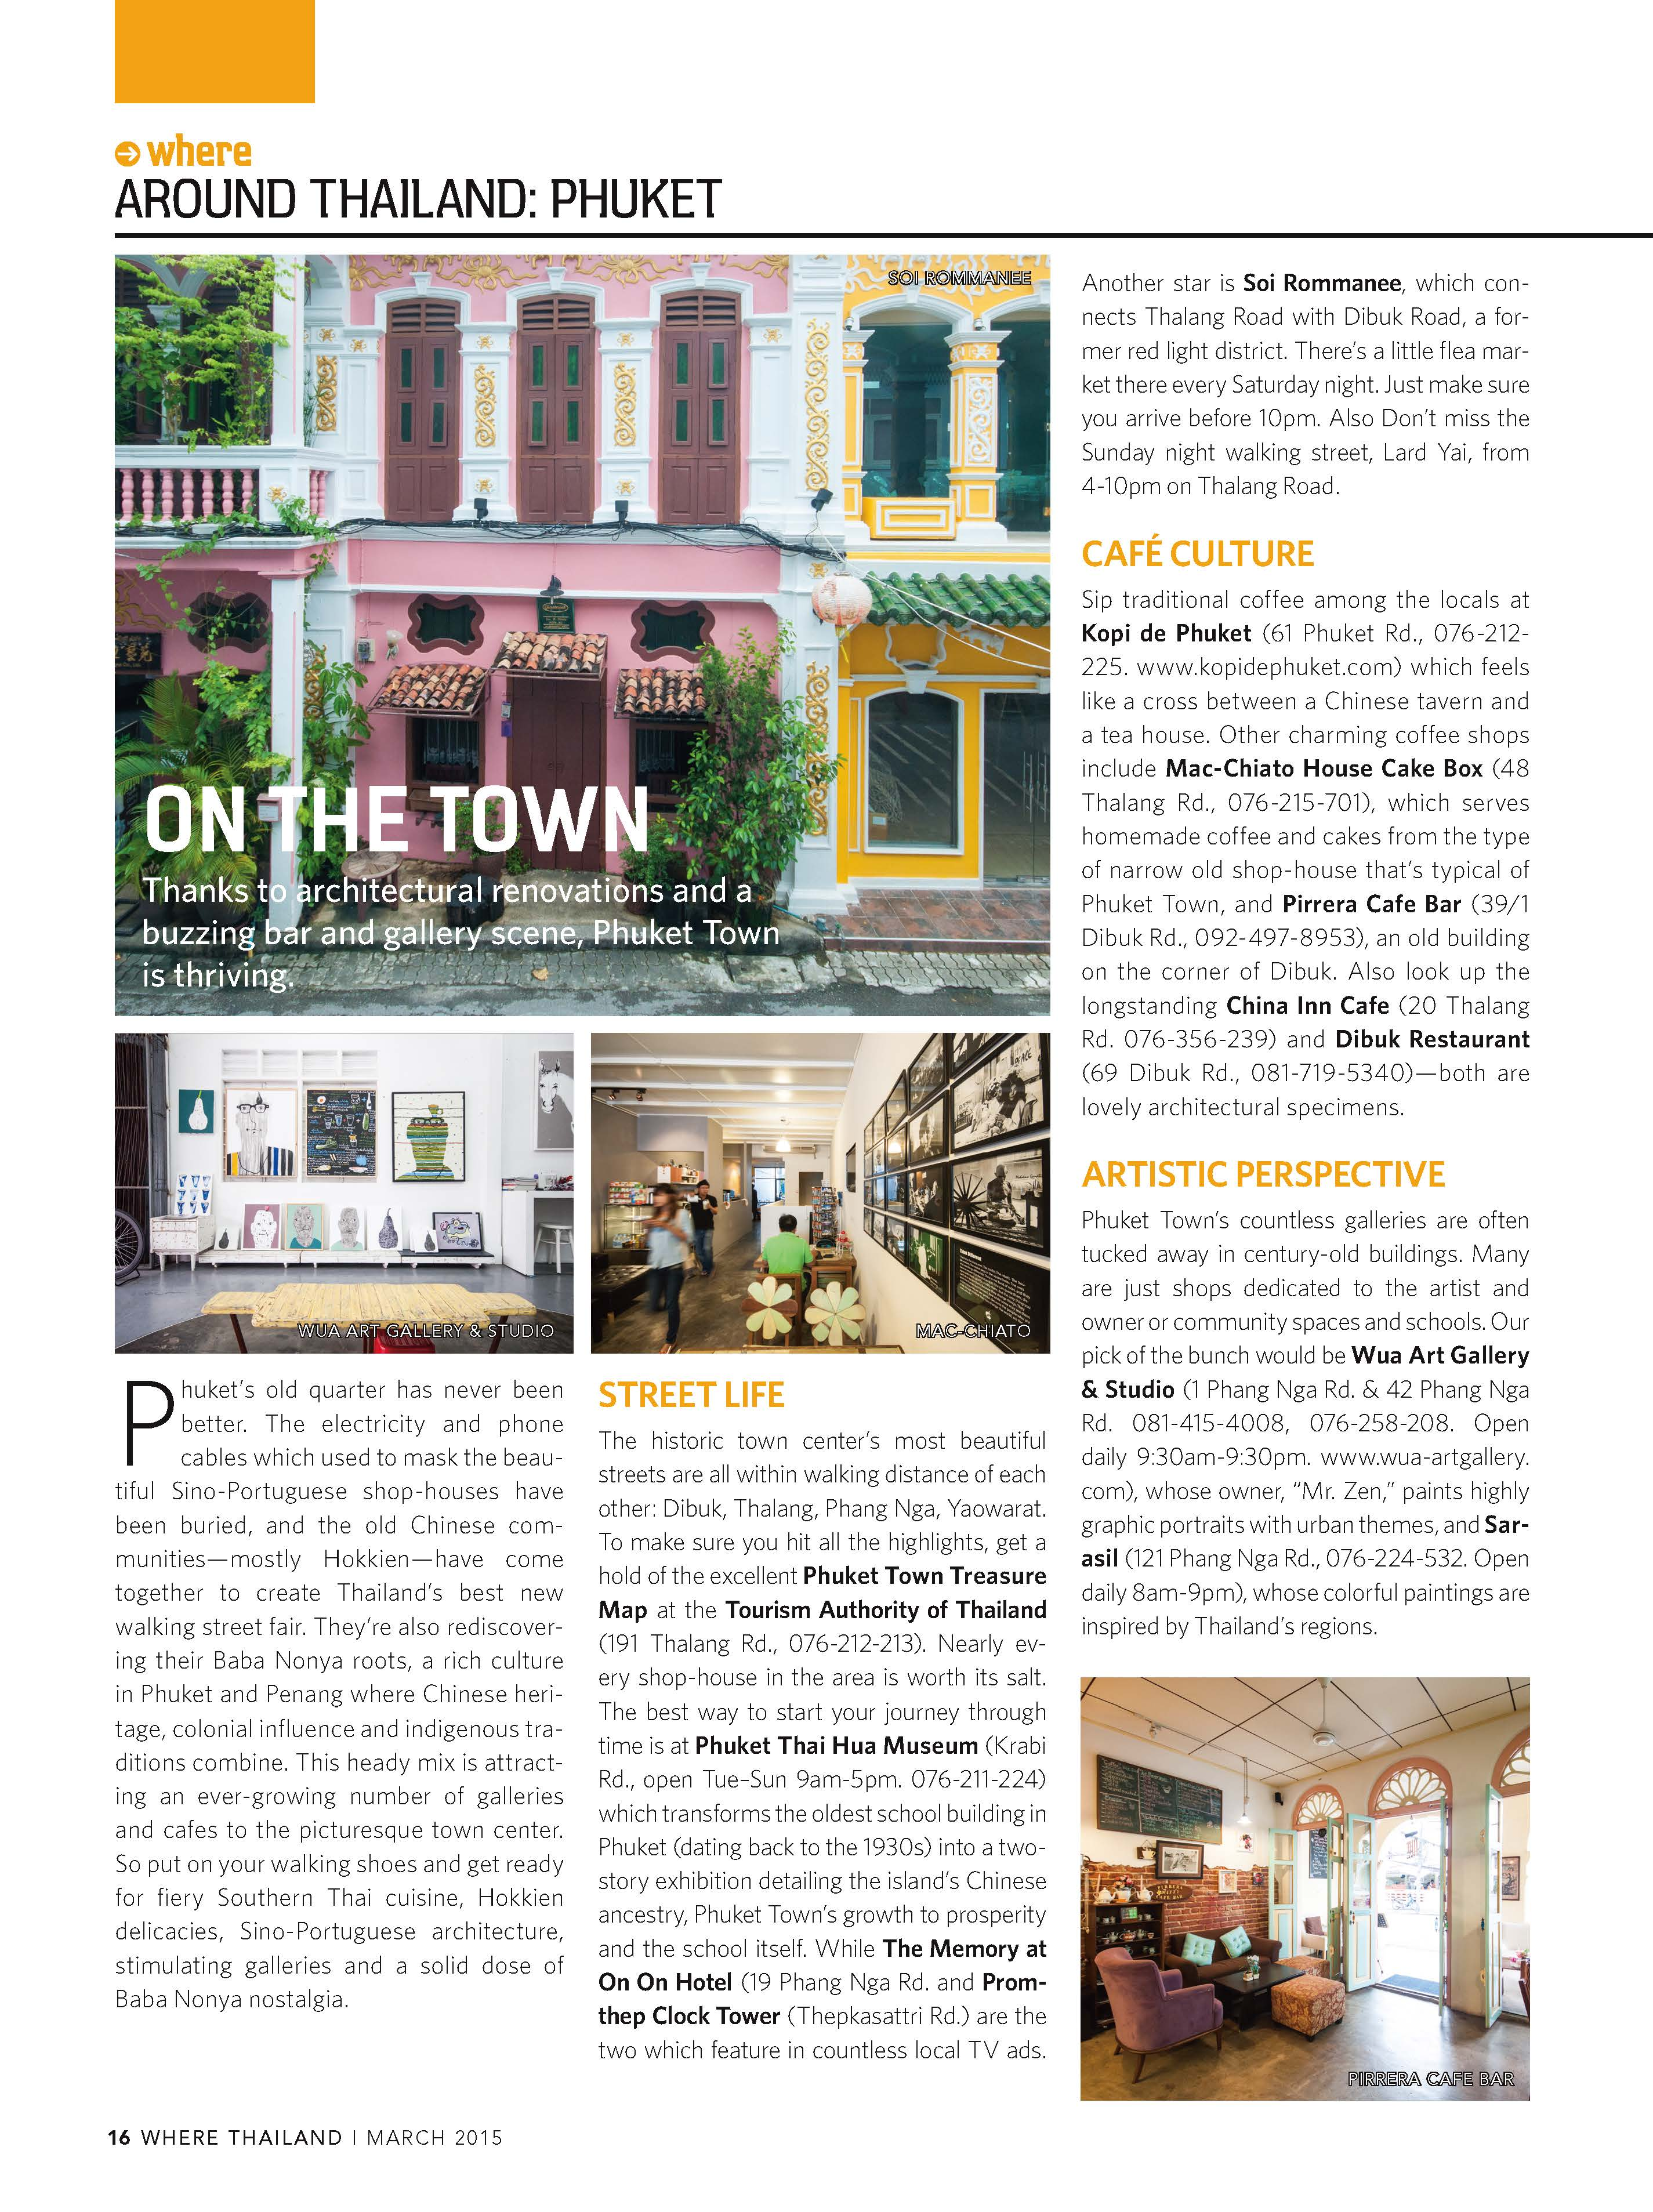 WHERE 38 MARCH 2015_Page_16.jpg